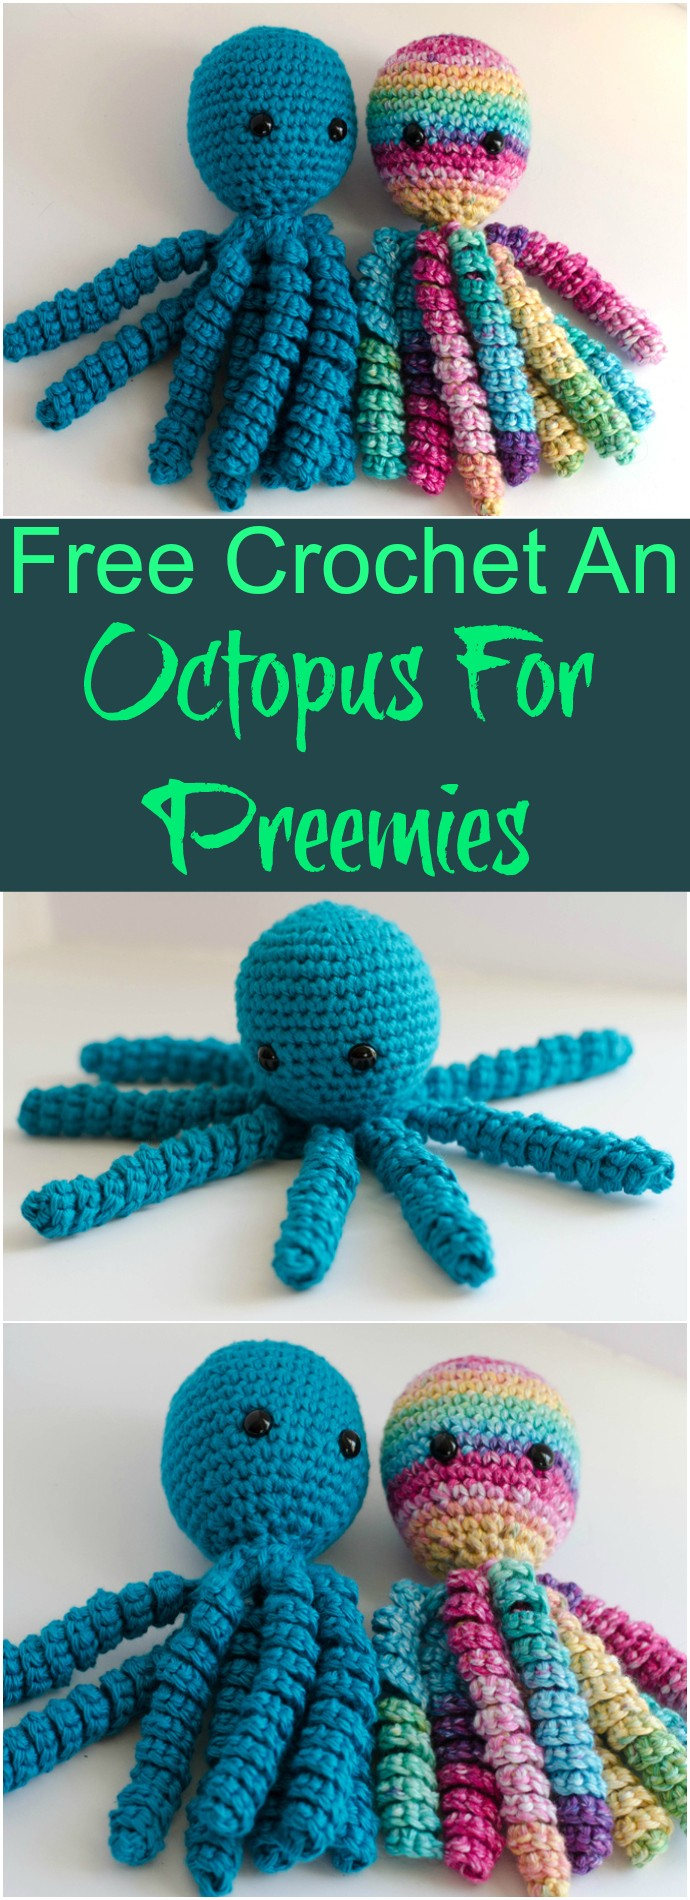 Free Crochet An Octopus For Preemies